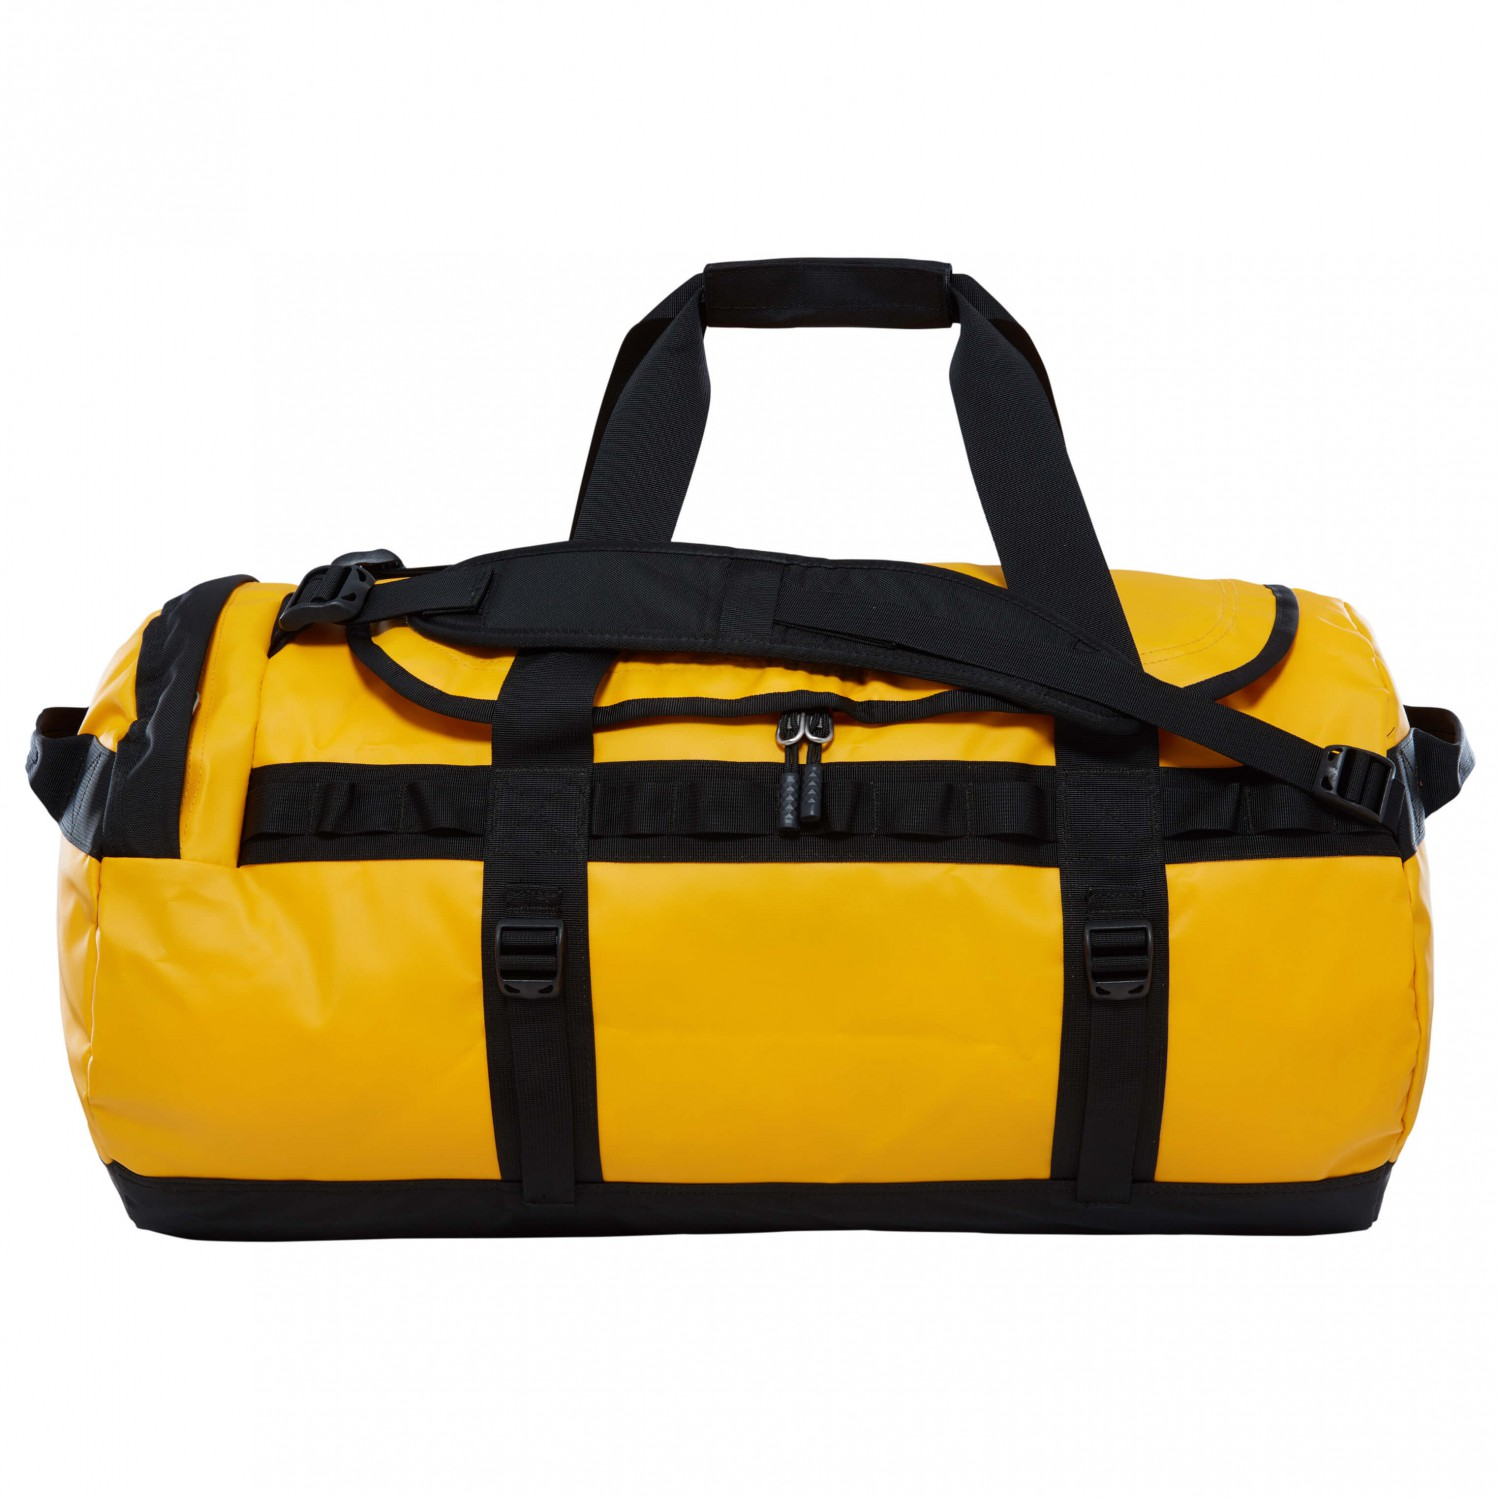 Porto Da The Borsa Base Duffel Camp Medium Face North Viaggio CqwR6B